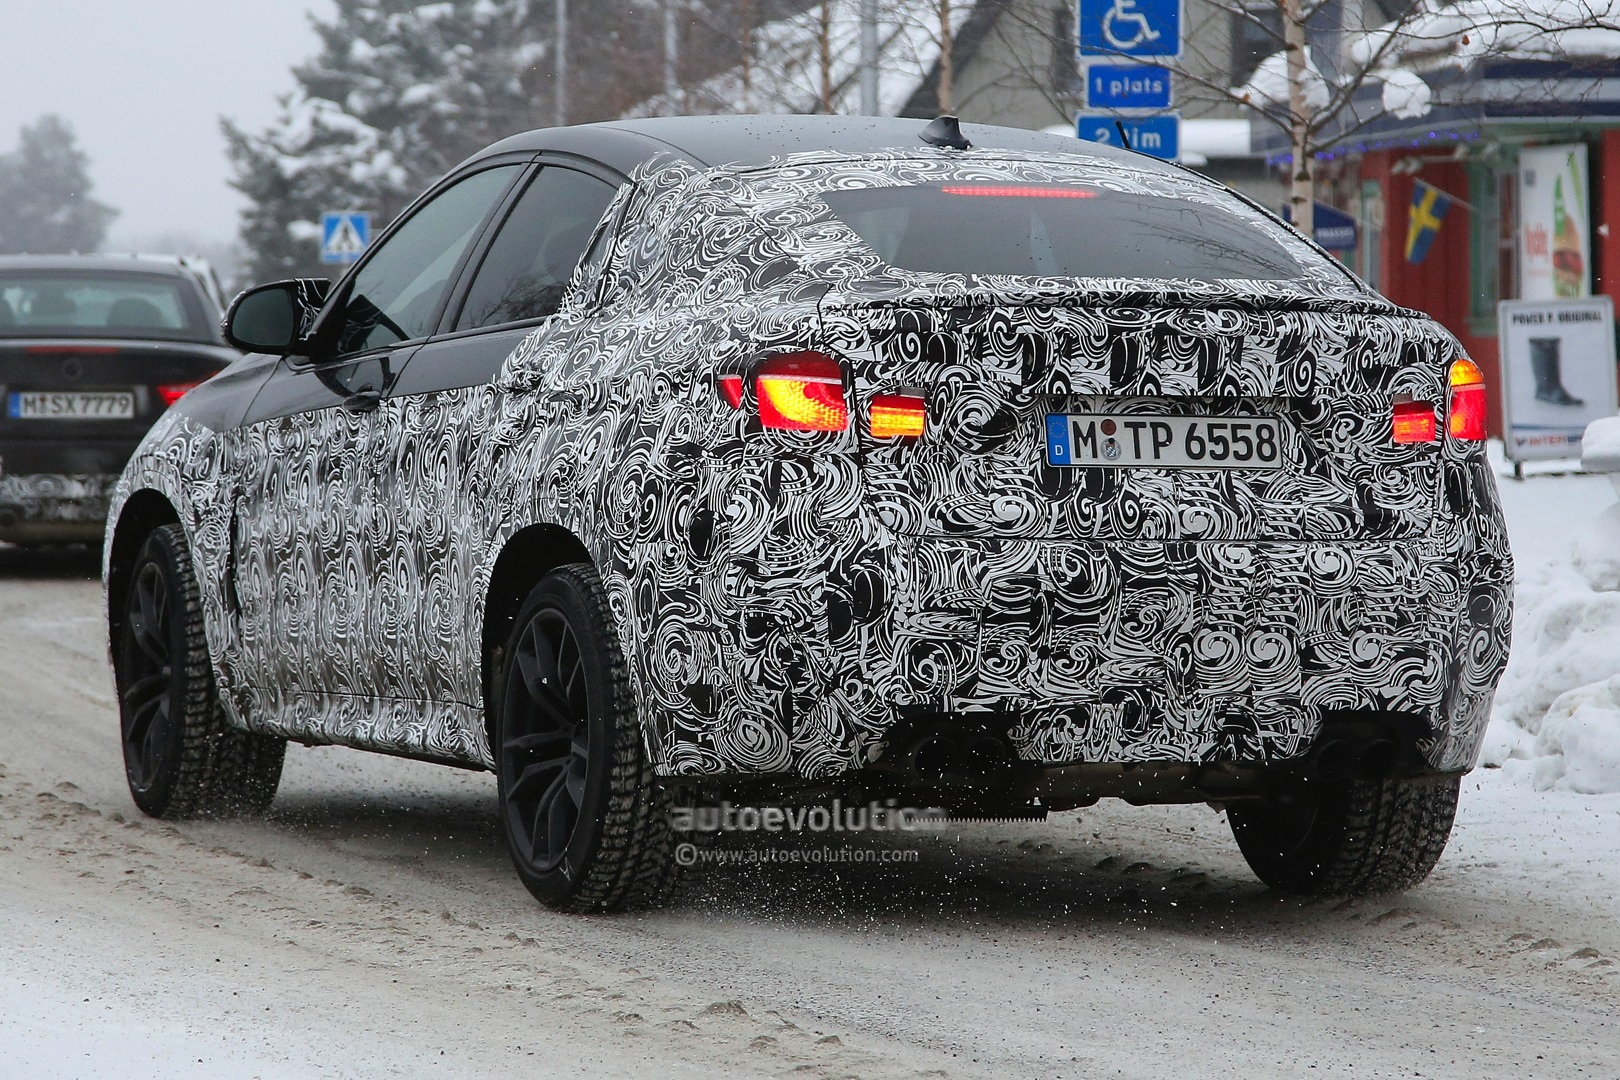 spyshots-b​mw-f86-x6-​m-spied-up​-close_6